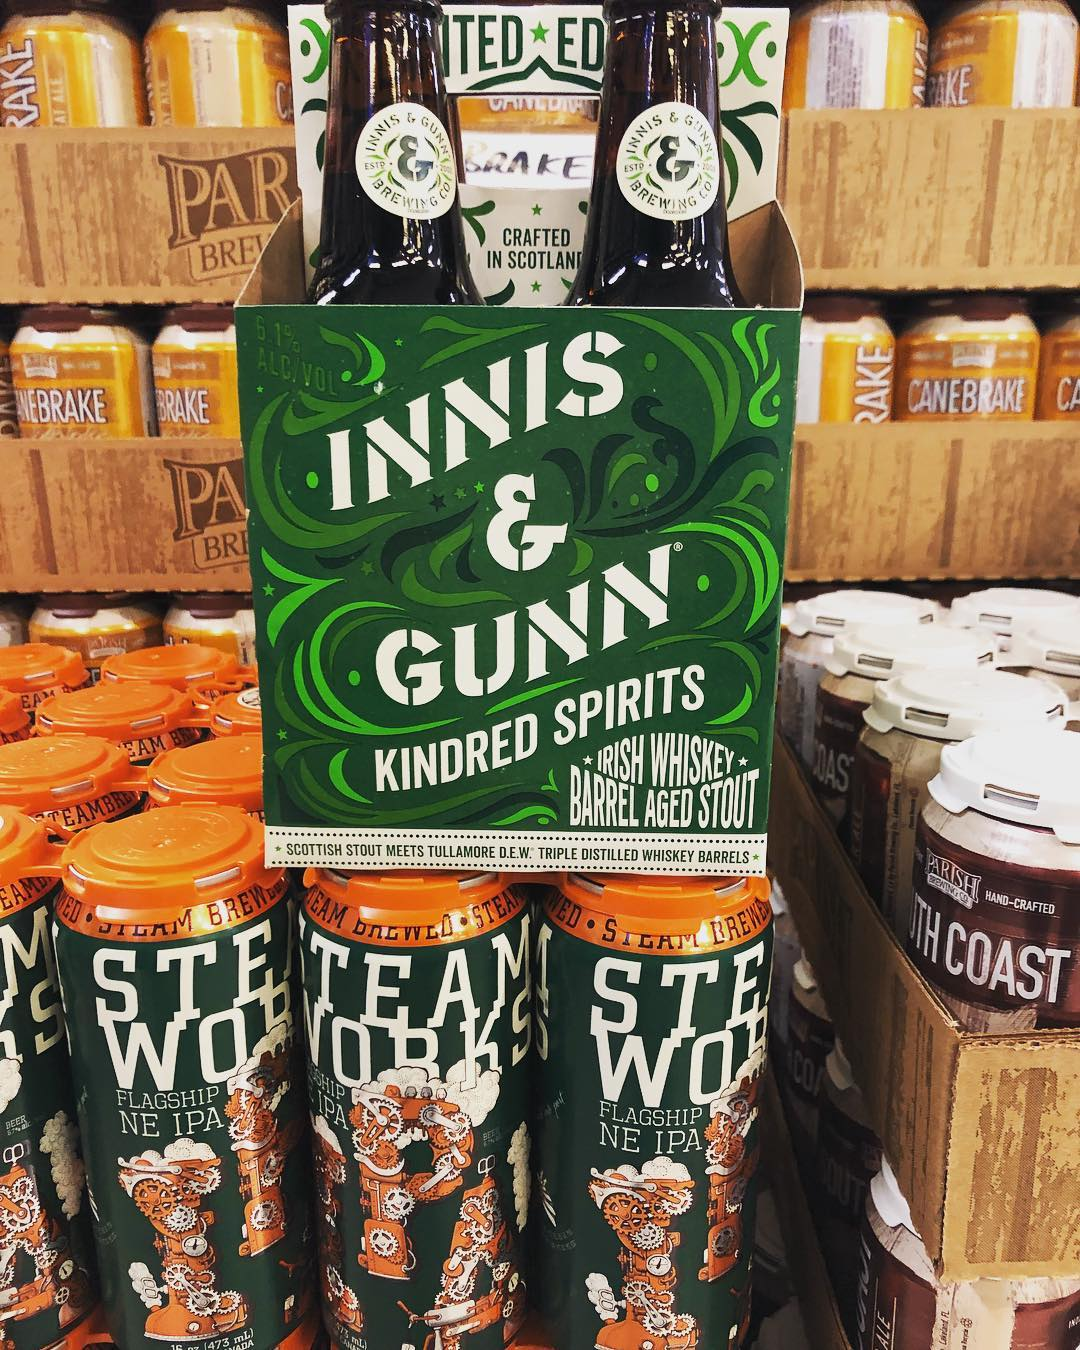 @innisandgunnusa Kindred Spirit stout aged in Irish whiskey barrels and @steamworksbrewing New England IPA is…